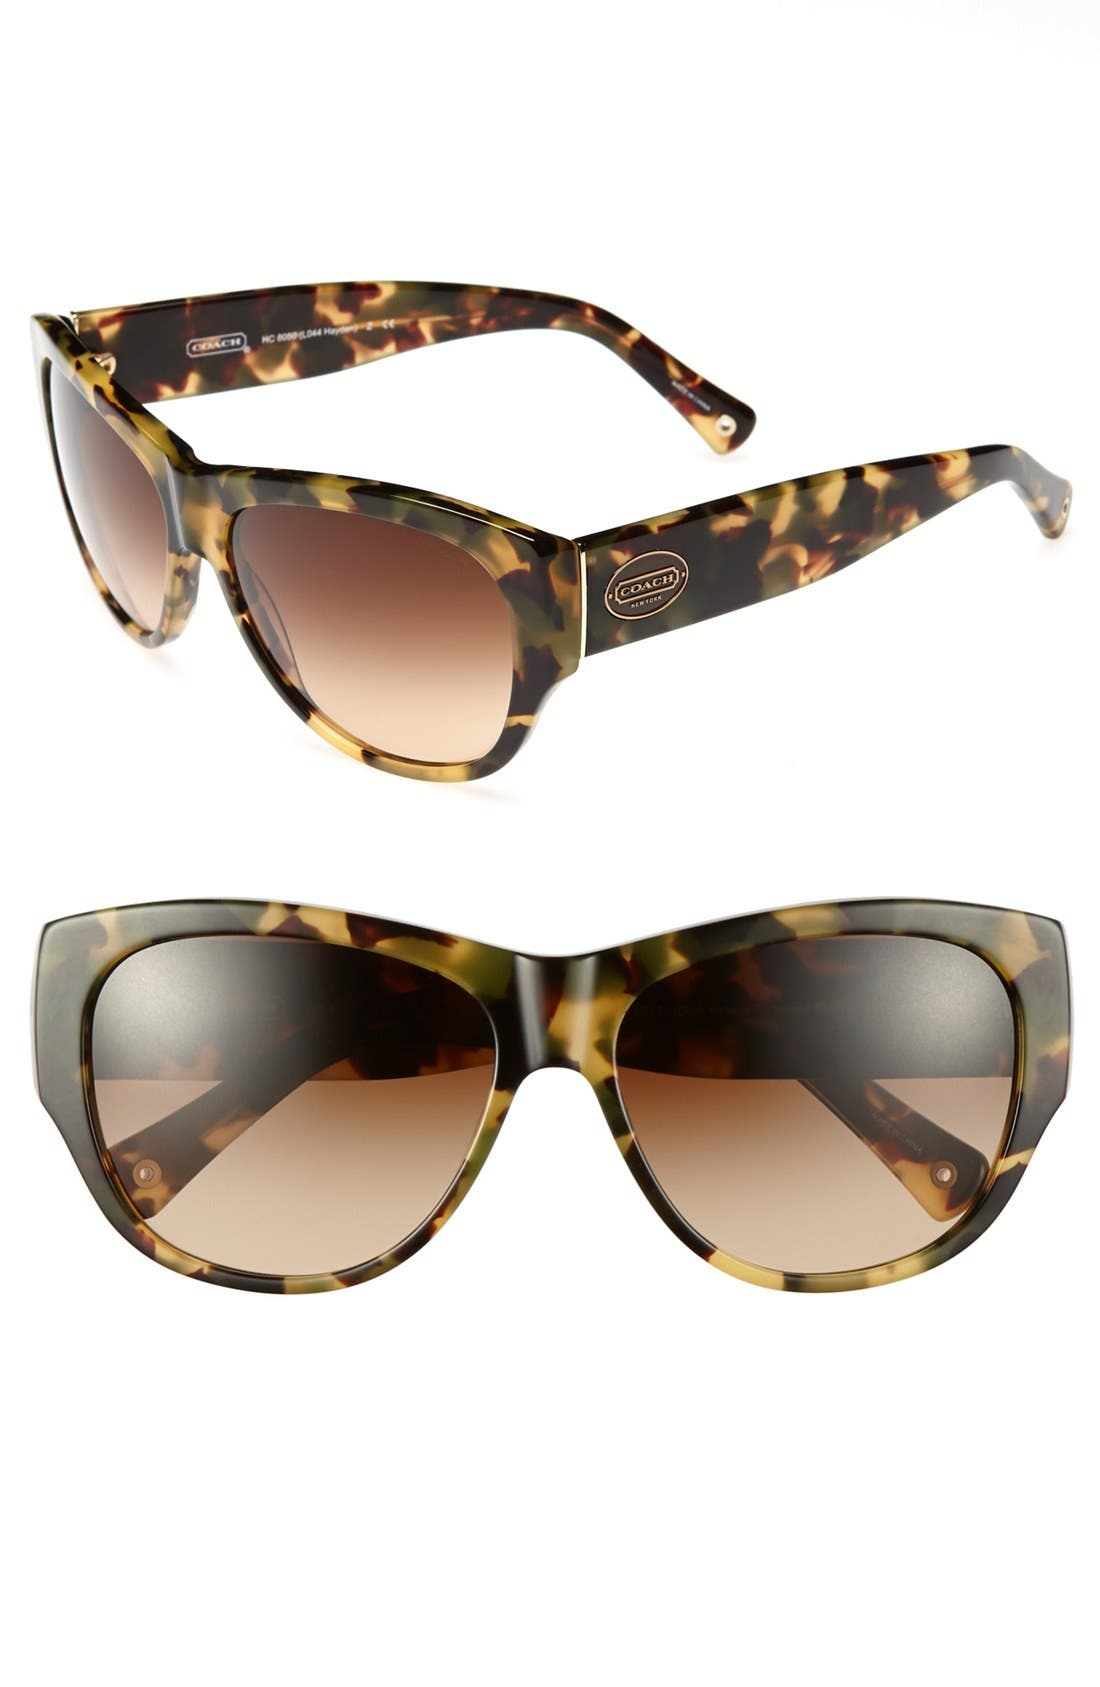 Main Image - COACH 'Hayden' 58mm Sunglasses